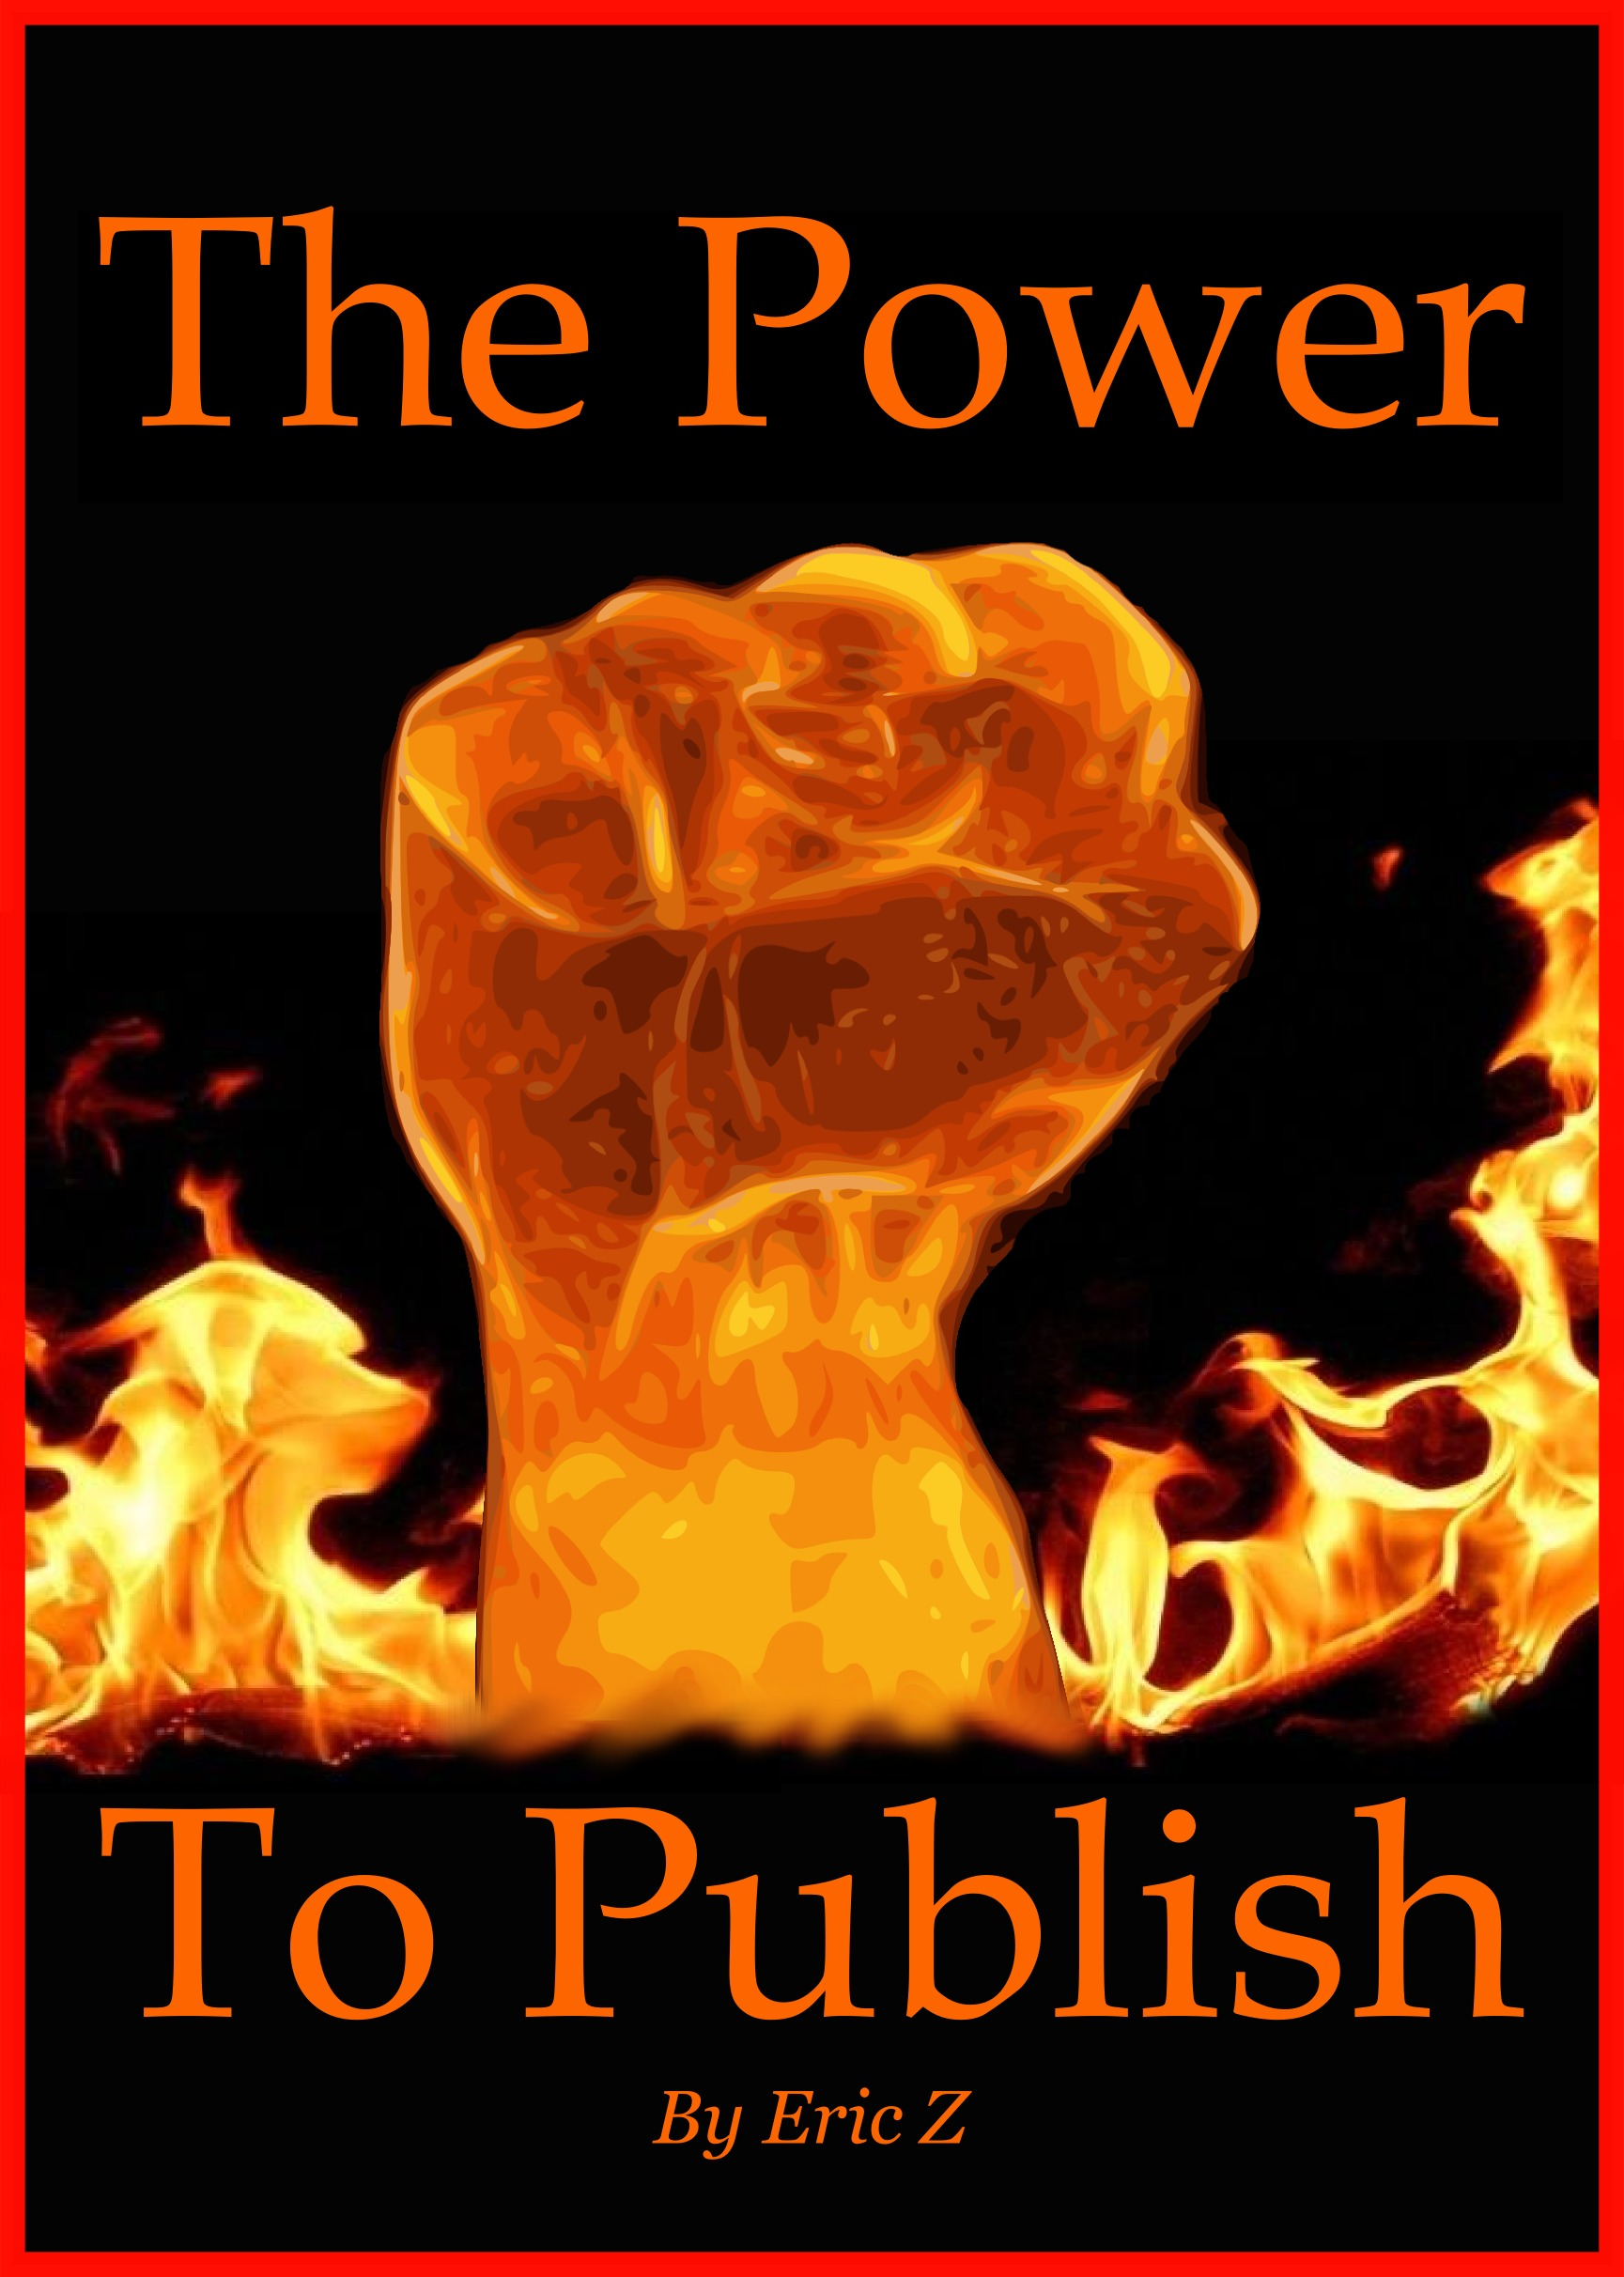 the power to publish!